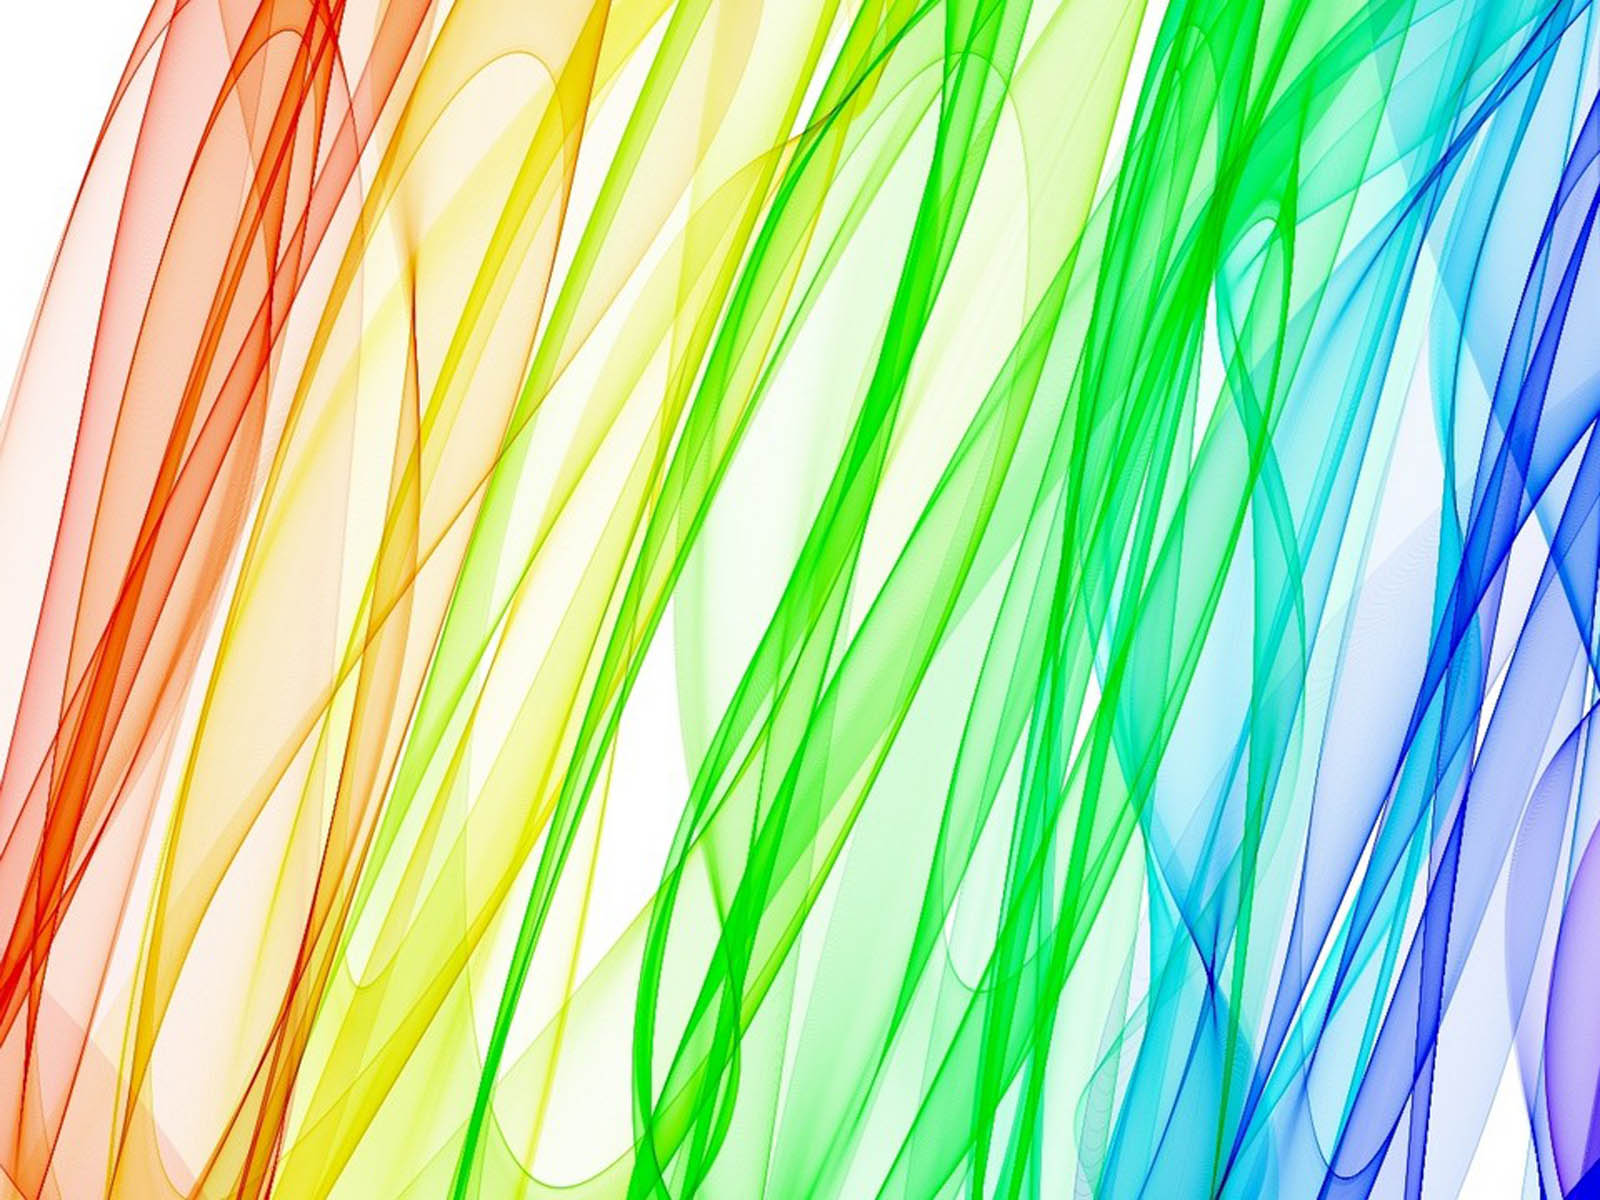 Abstract Free Desktop Wallpaper Rainbows Wallpaper